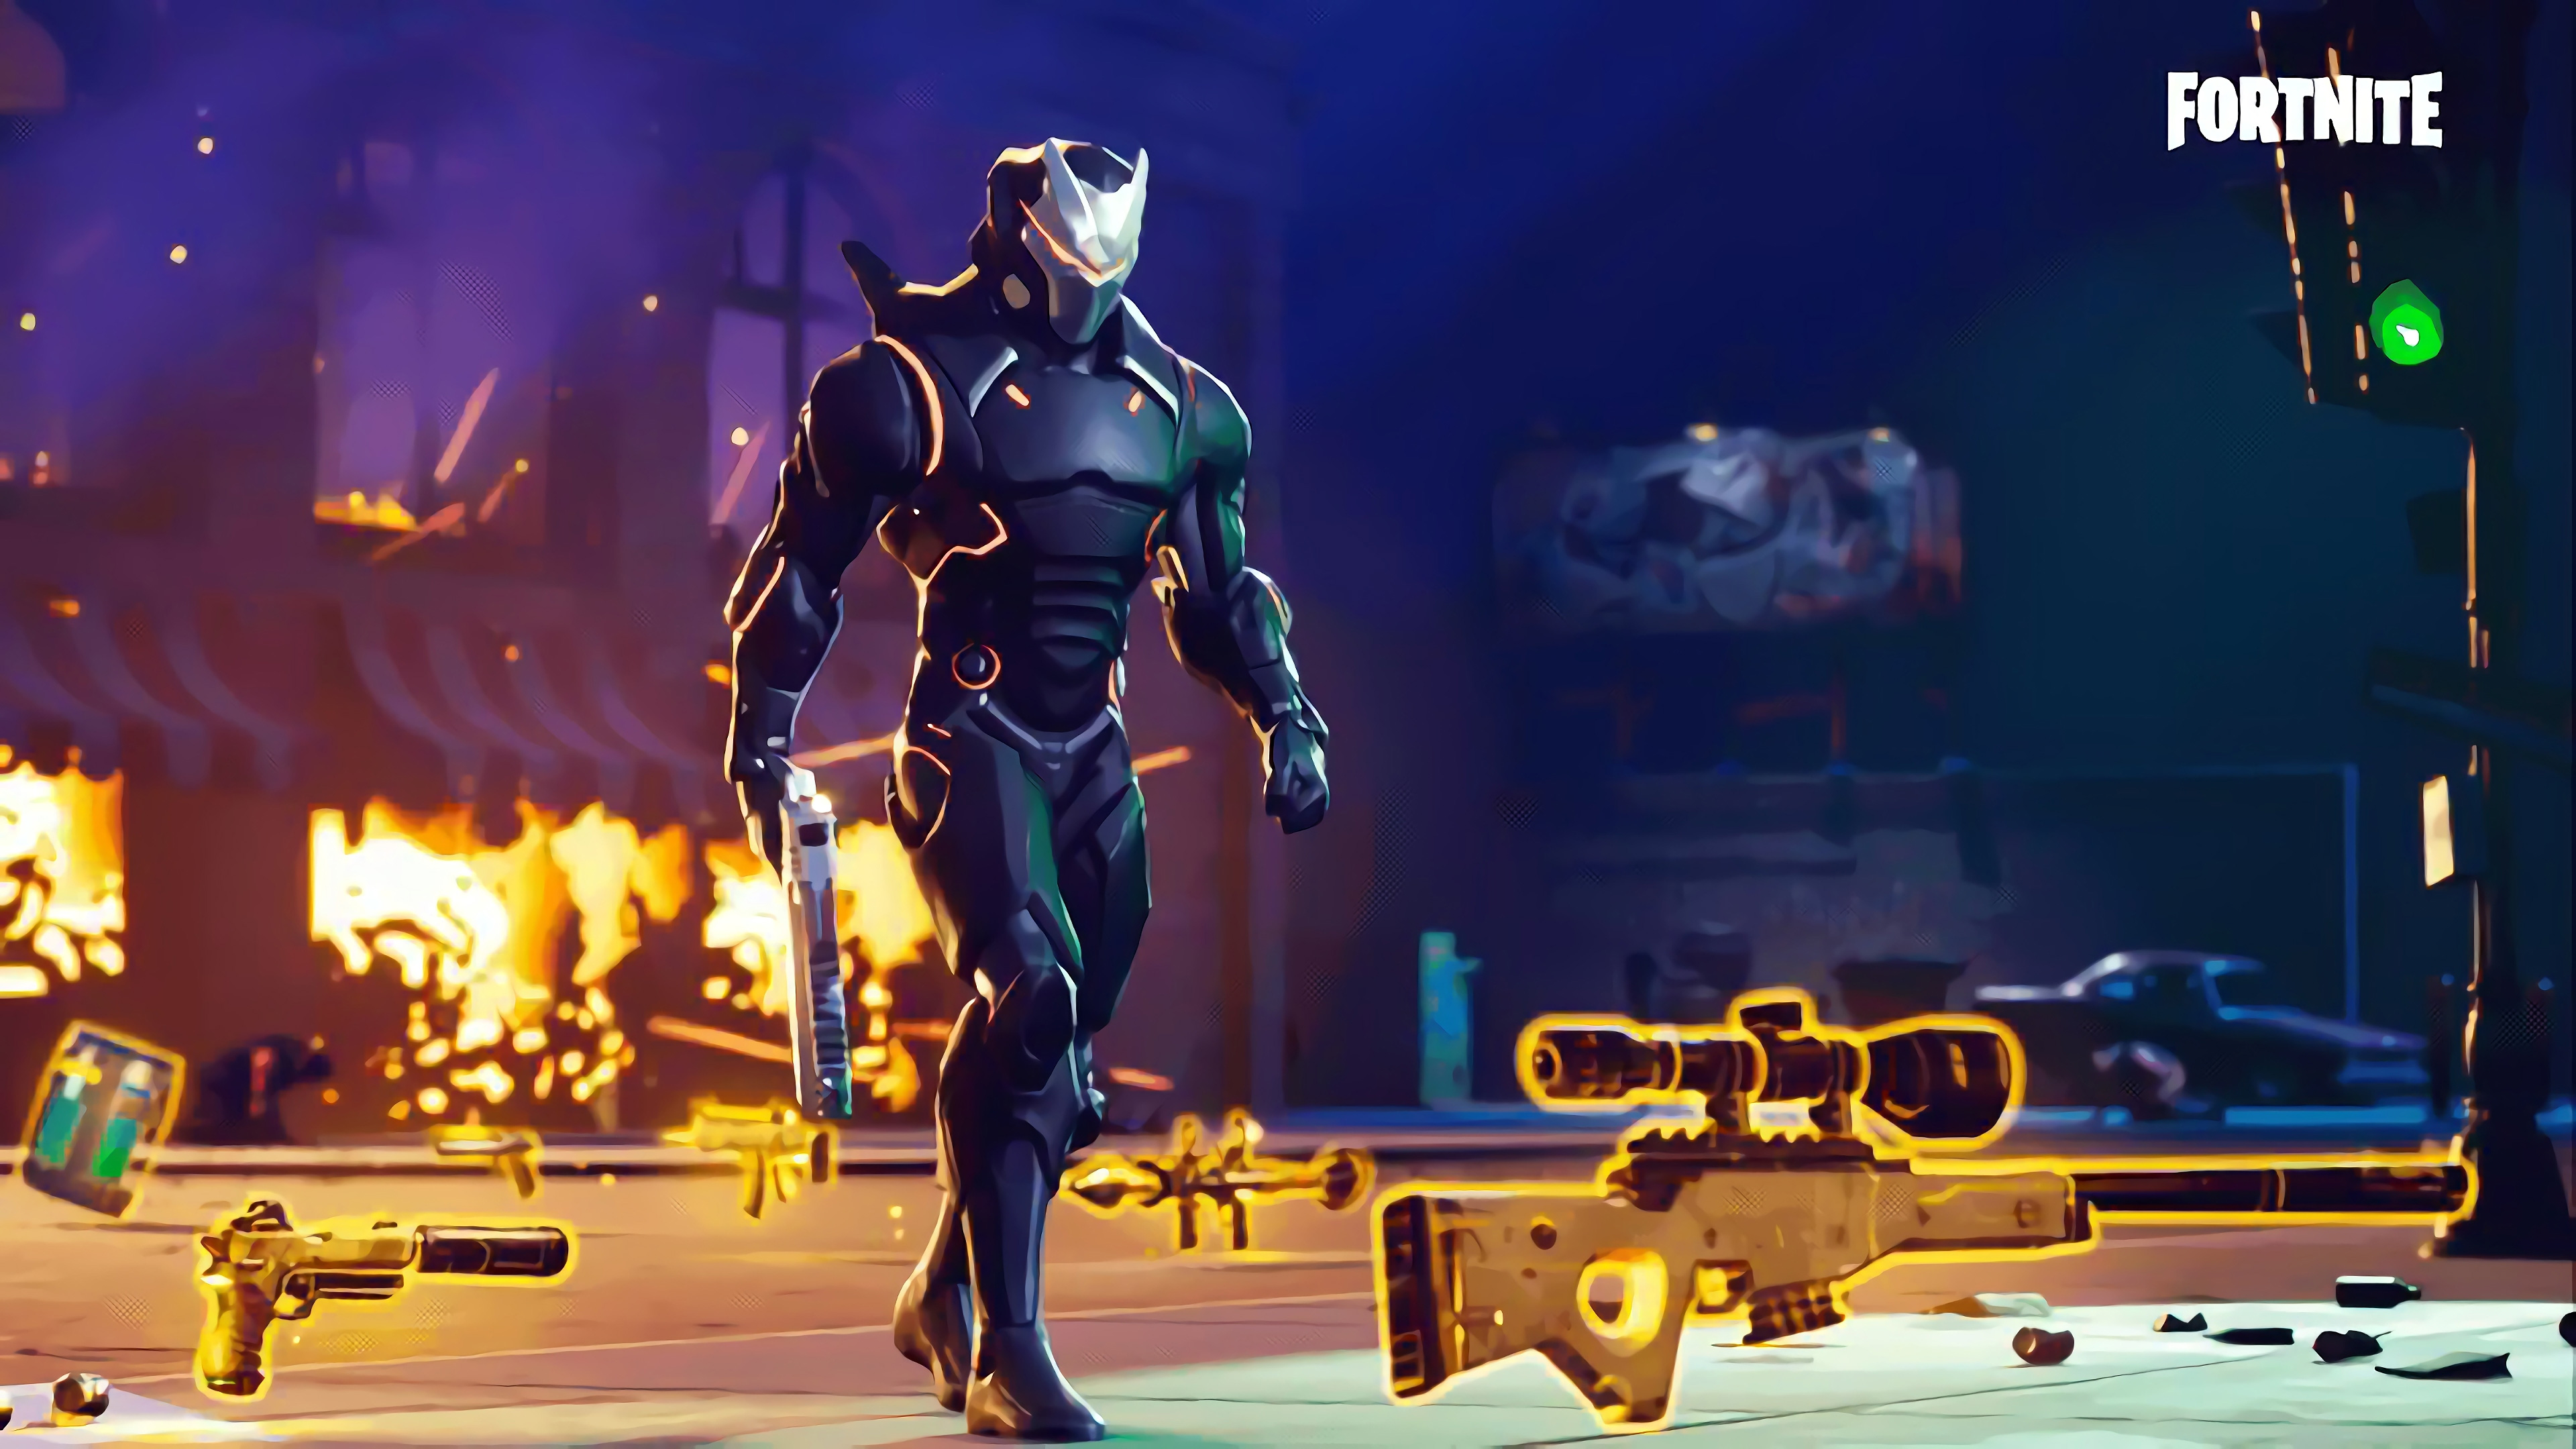 fortnite season 5 omega 1537691717 - Fortnite Season 5 Omega - reddit wallpapers, ps games wallpapers, hd-wallpapers, games wallpapers, fortnite wallpapers, fortnite season 5 wallpapers, artist wallpapers, 4k-wallpapers, 2018 games wallpapers